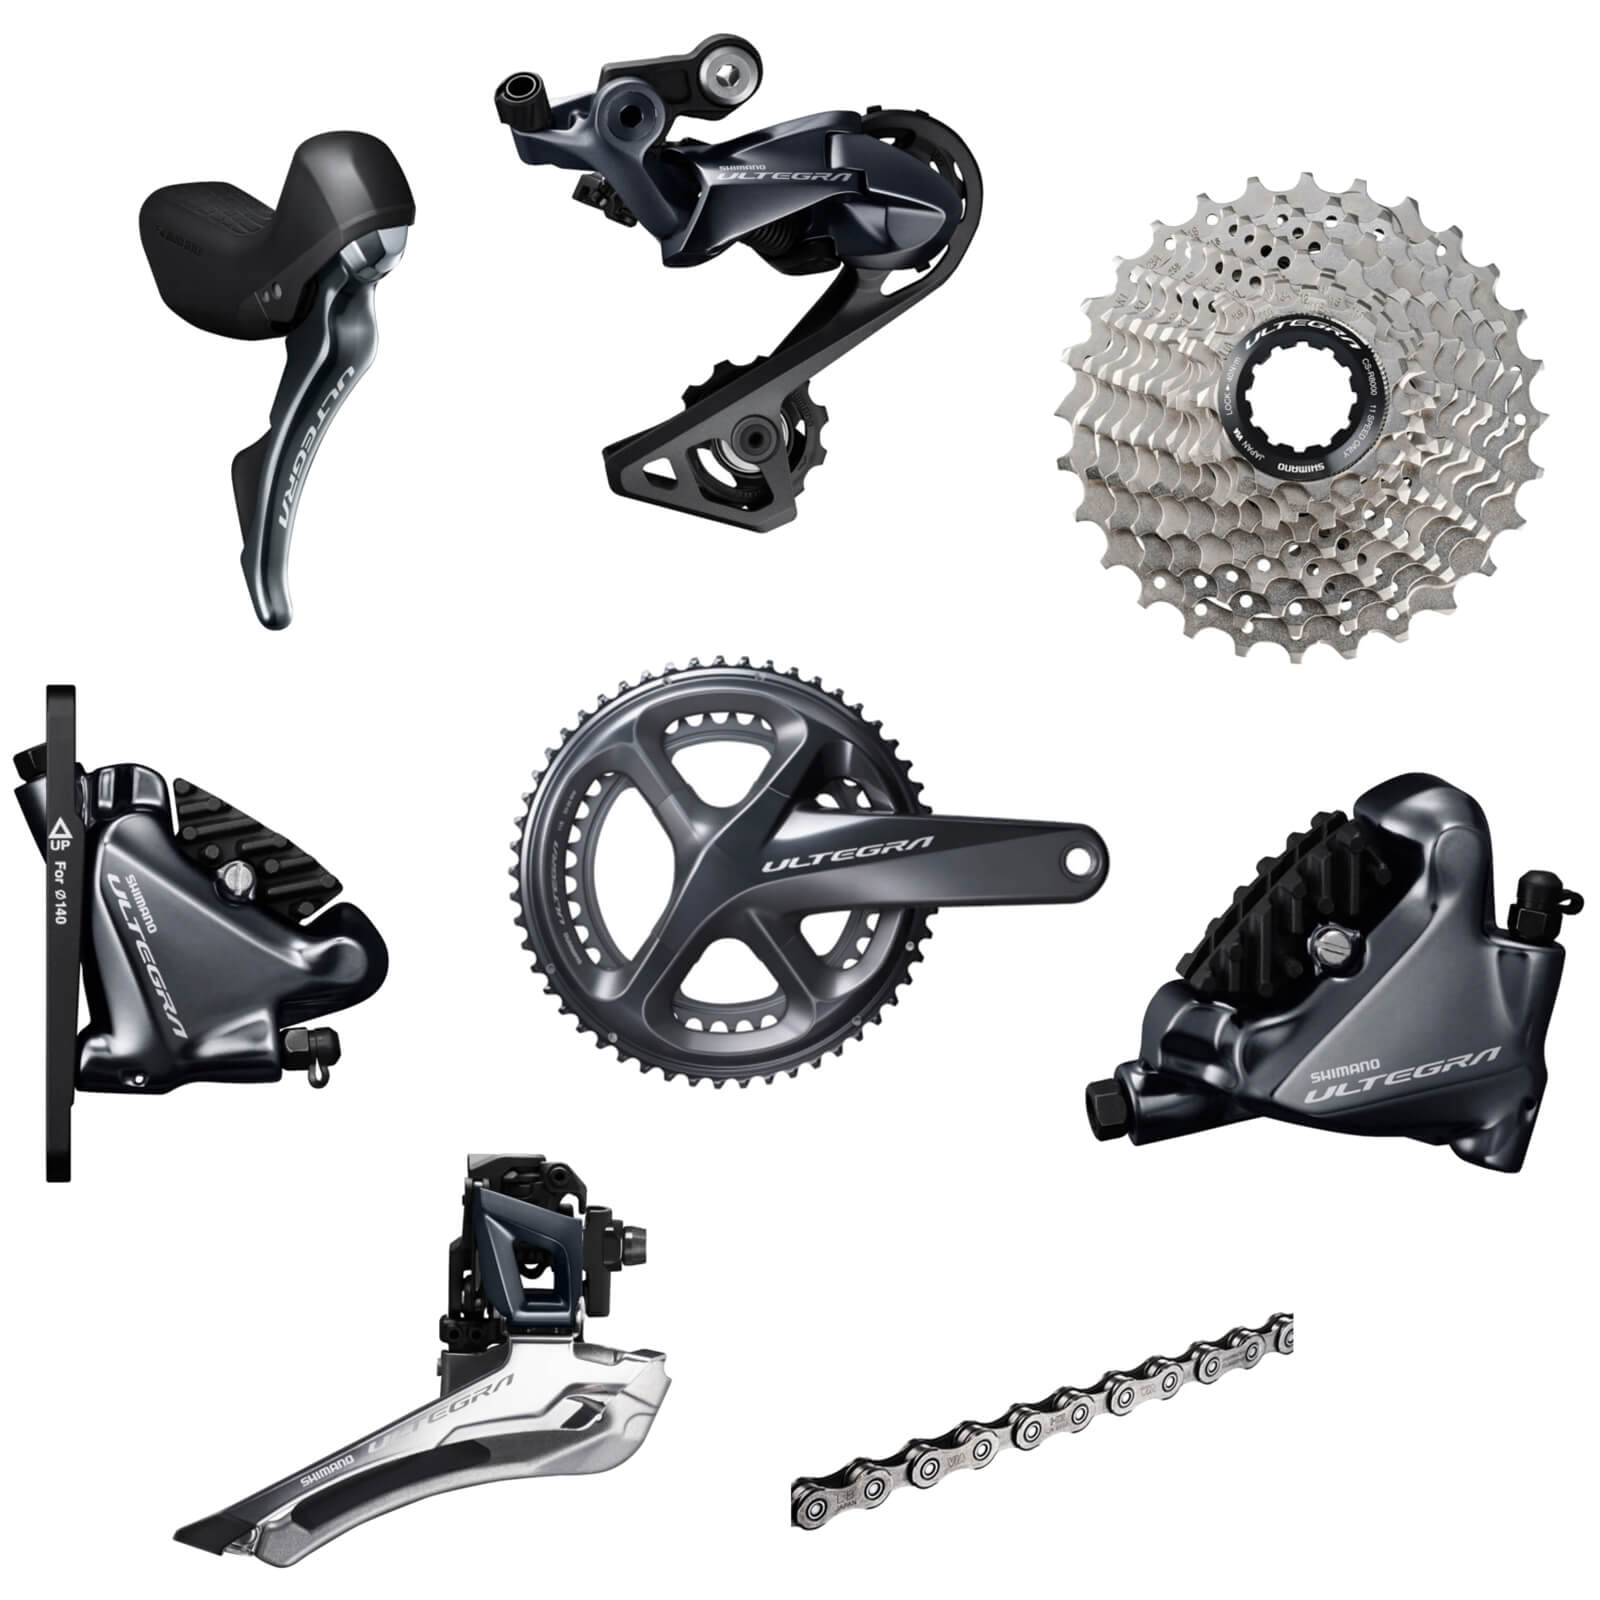 Shimano Ultegra R8020 11 Speed Groupset - Hydraulic Disc Brake